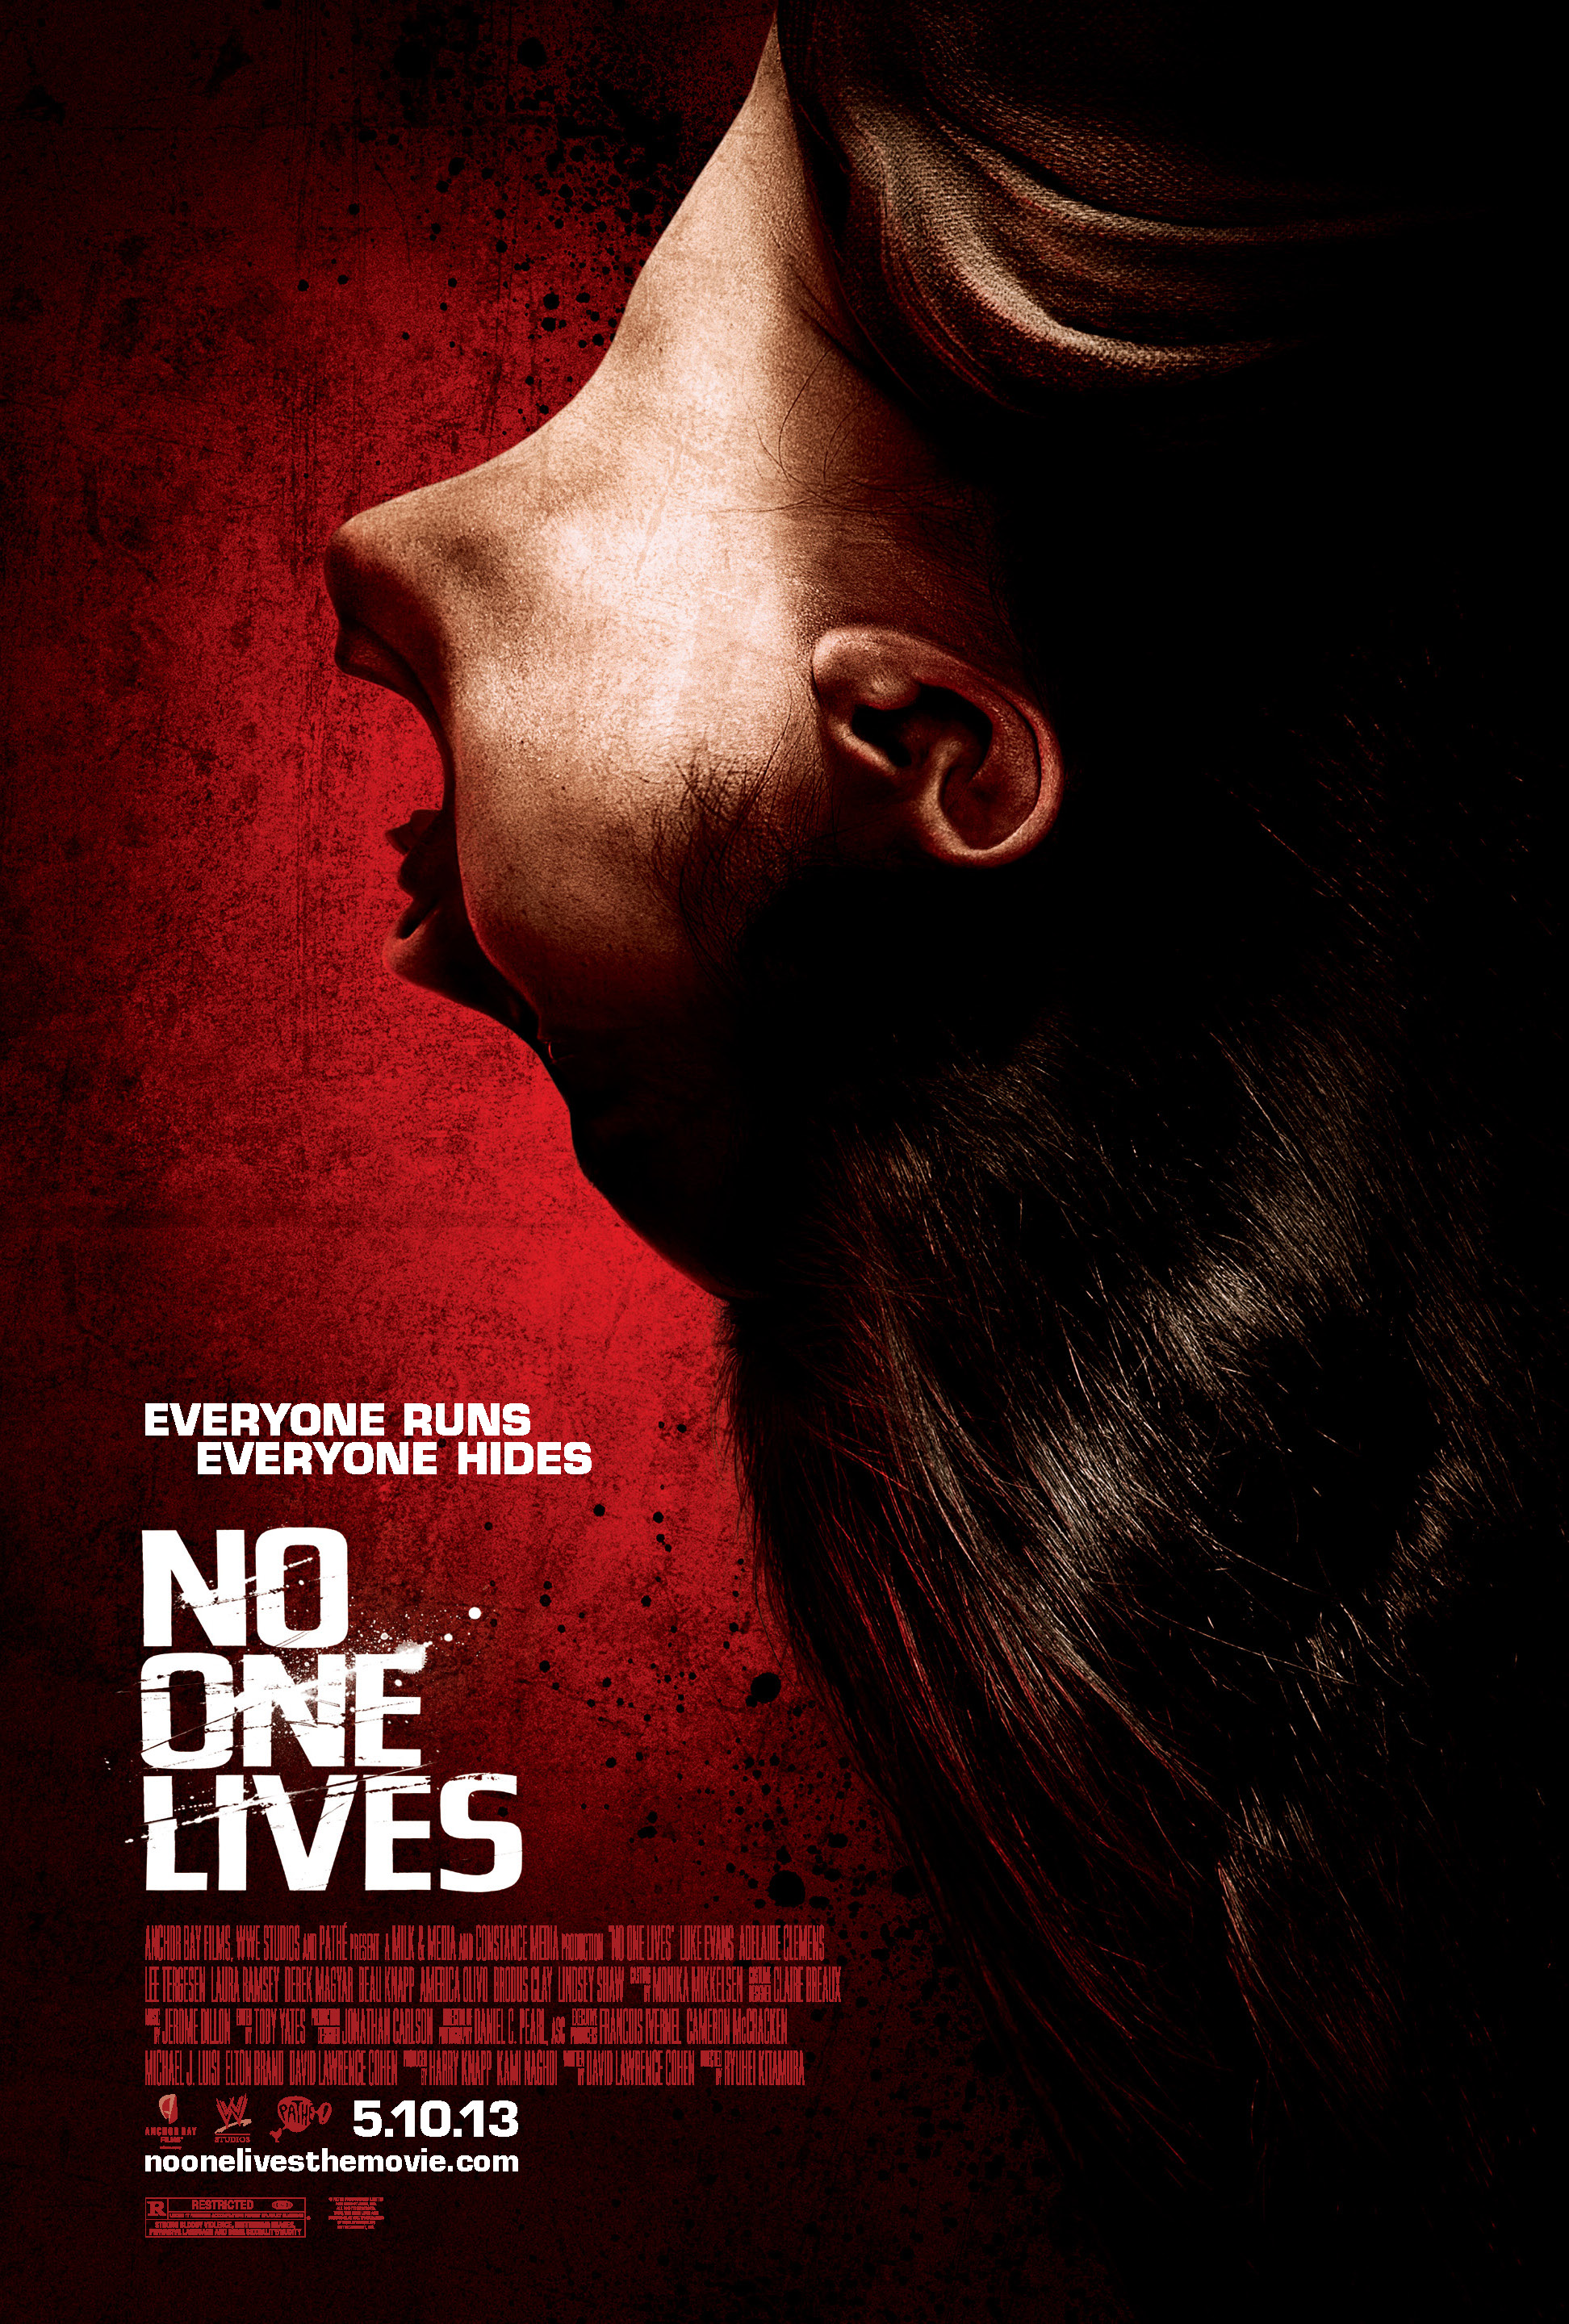 No One Lives (2012) [REVIEW] | The Wolfman Cometh